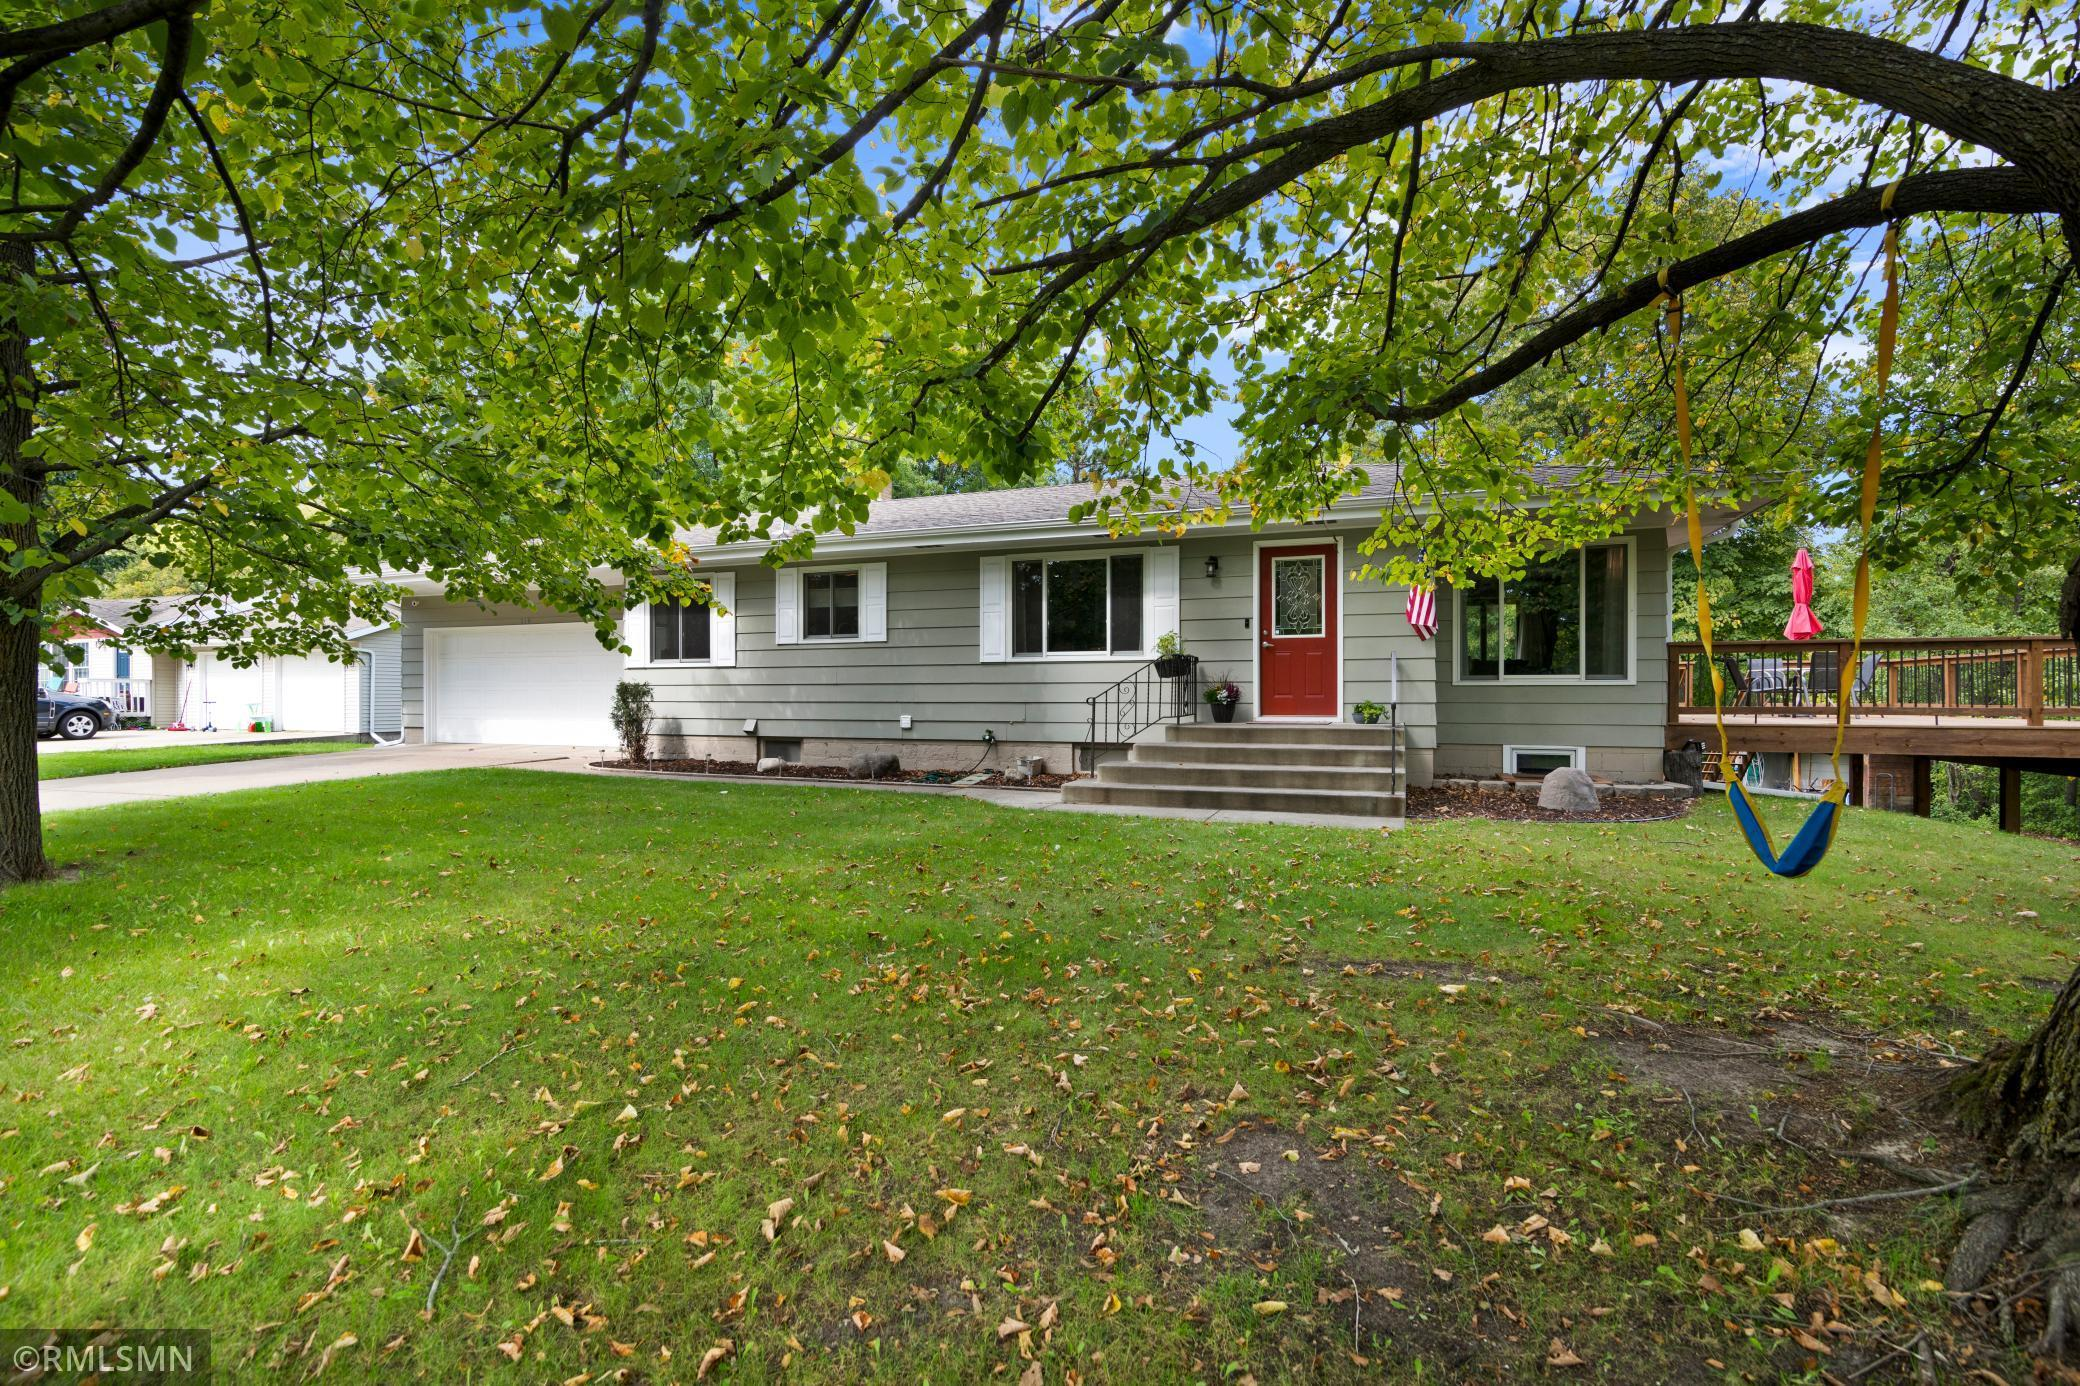 Only the 2nd time this home has been on the market since 1965! This very private (only 1 bordering neighbor) 4BR, 2BA Brainerd home is located directly across the street from beautiful Bane Park. Property borders Little Buffalo Creek which you can see and hear from large 16x20 cedar deck (built 2020). Home features many updates including remodeled bathrooms, new windows, large sized dining, living, and family rooms. Walkout lower level patio leading to large level private backyard. Also has private walking trail leading to the creek with many large Basswood trees covering property. Don't miss the chance to see a hidden gem like this! Contact today to set up a showing.